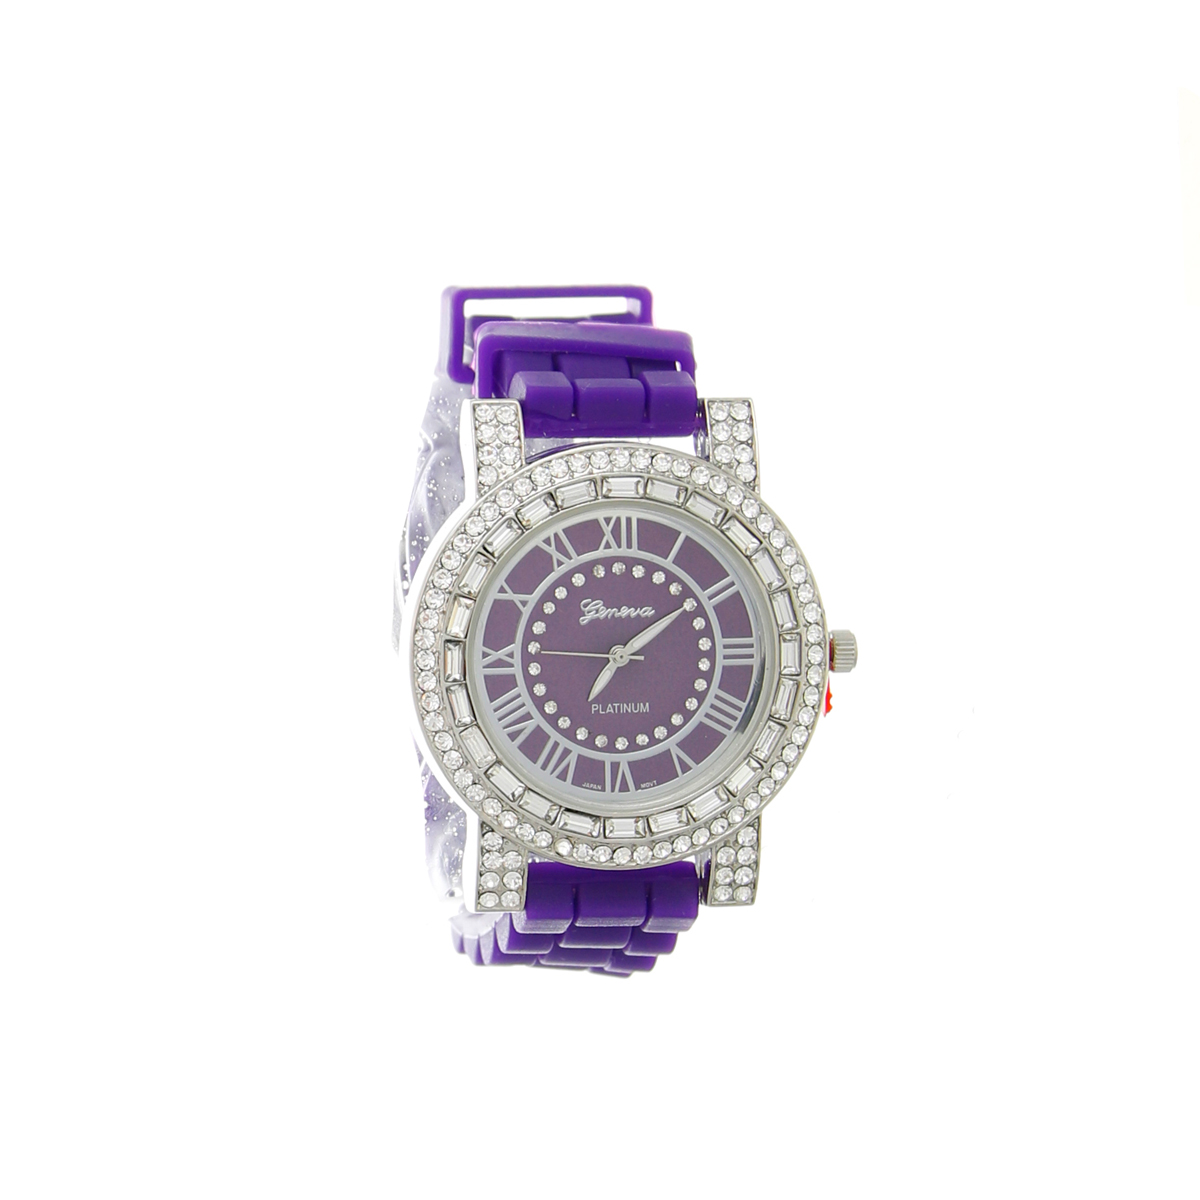 J2328_Circle_Rhinestone_Rubber_Watch_Purple